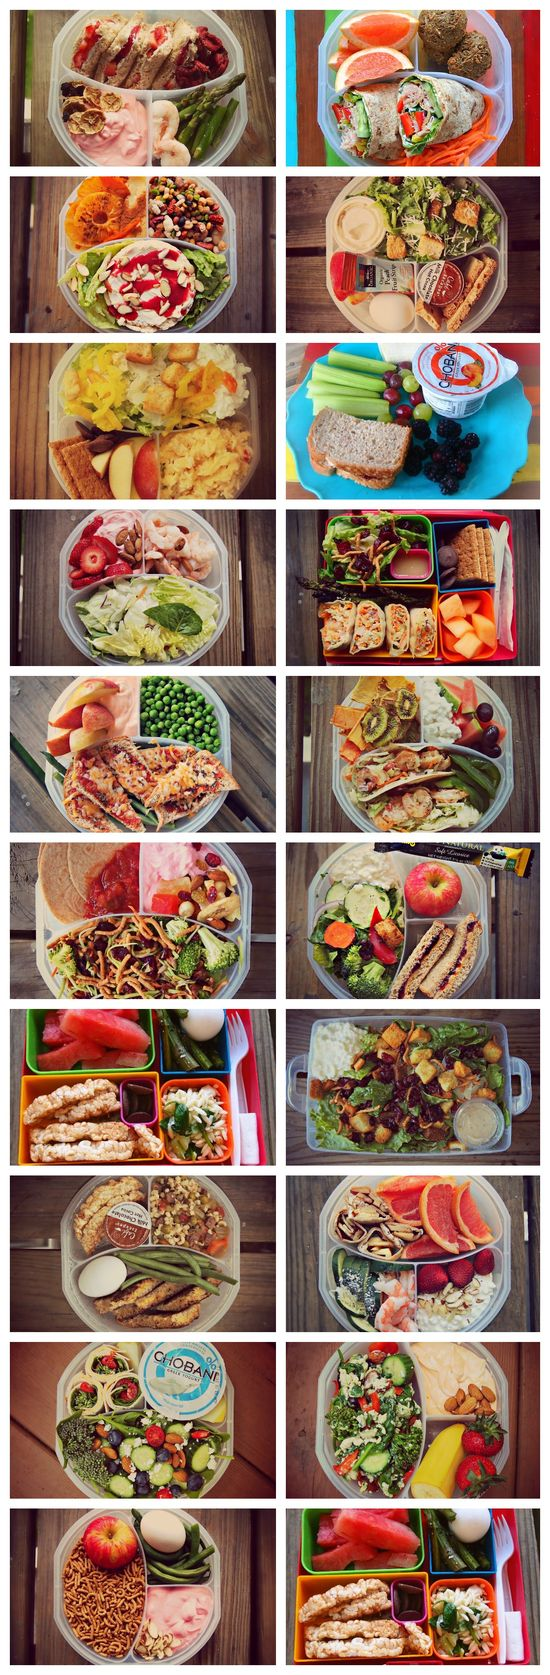 Lunch Ideas. This blogger posts a picture of her lunch every day.